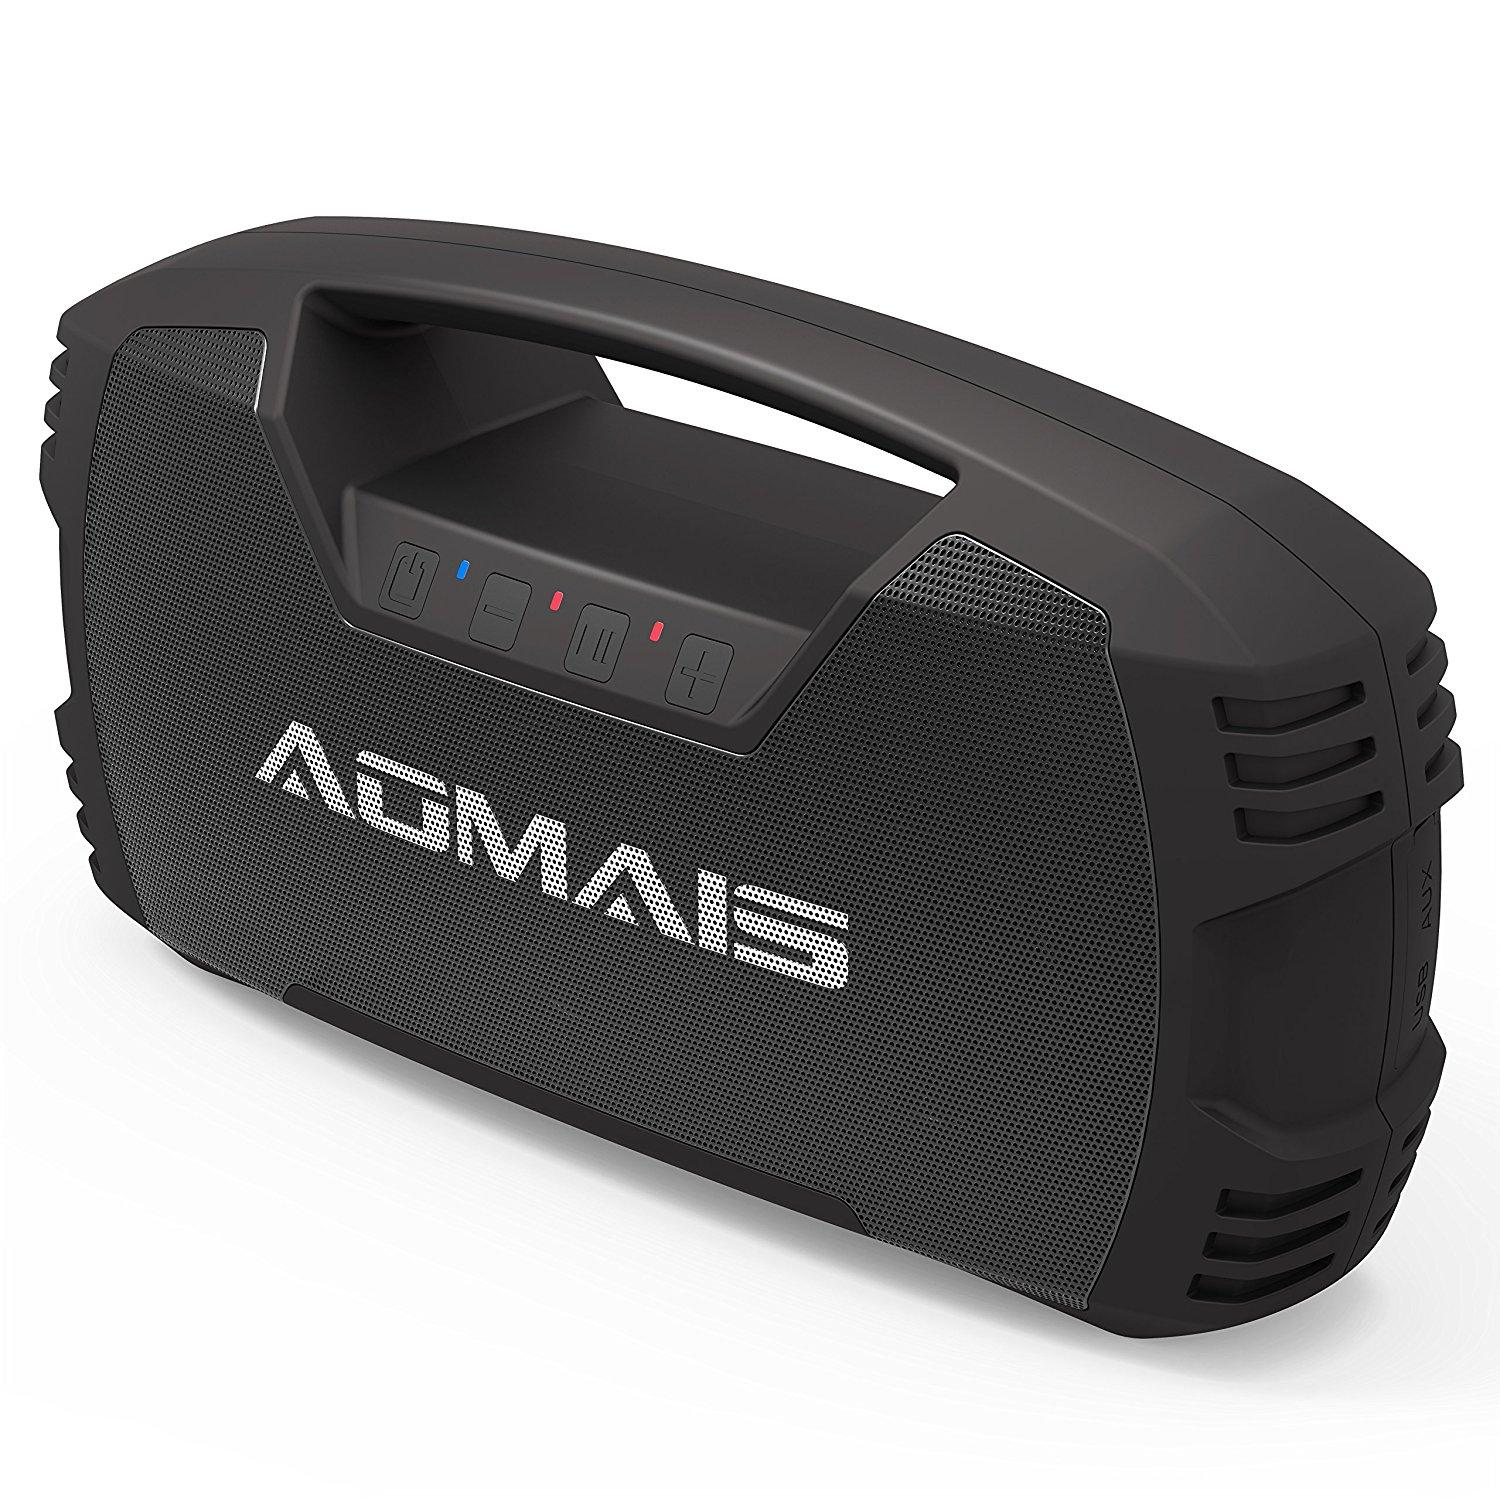 Aomais Go Bluetooth Speakers Portable Indoor Outdoor 30w Full